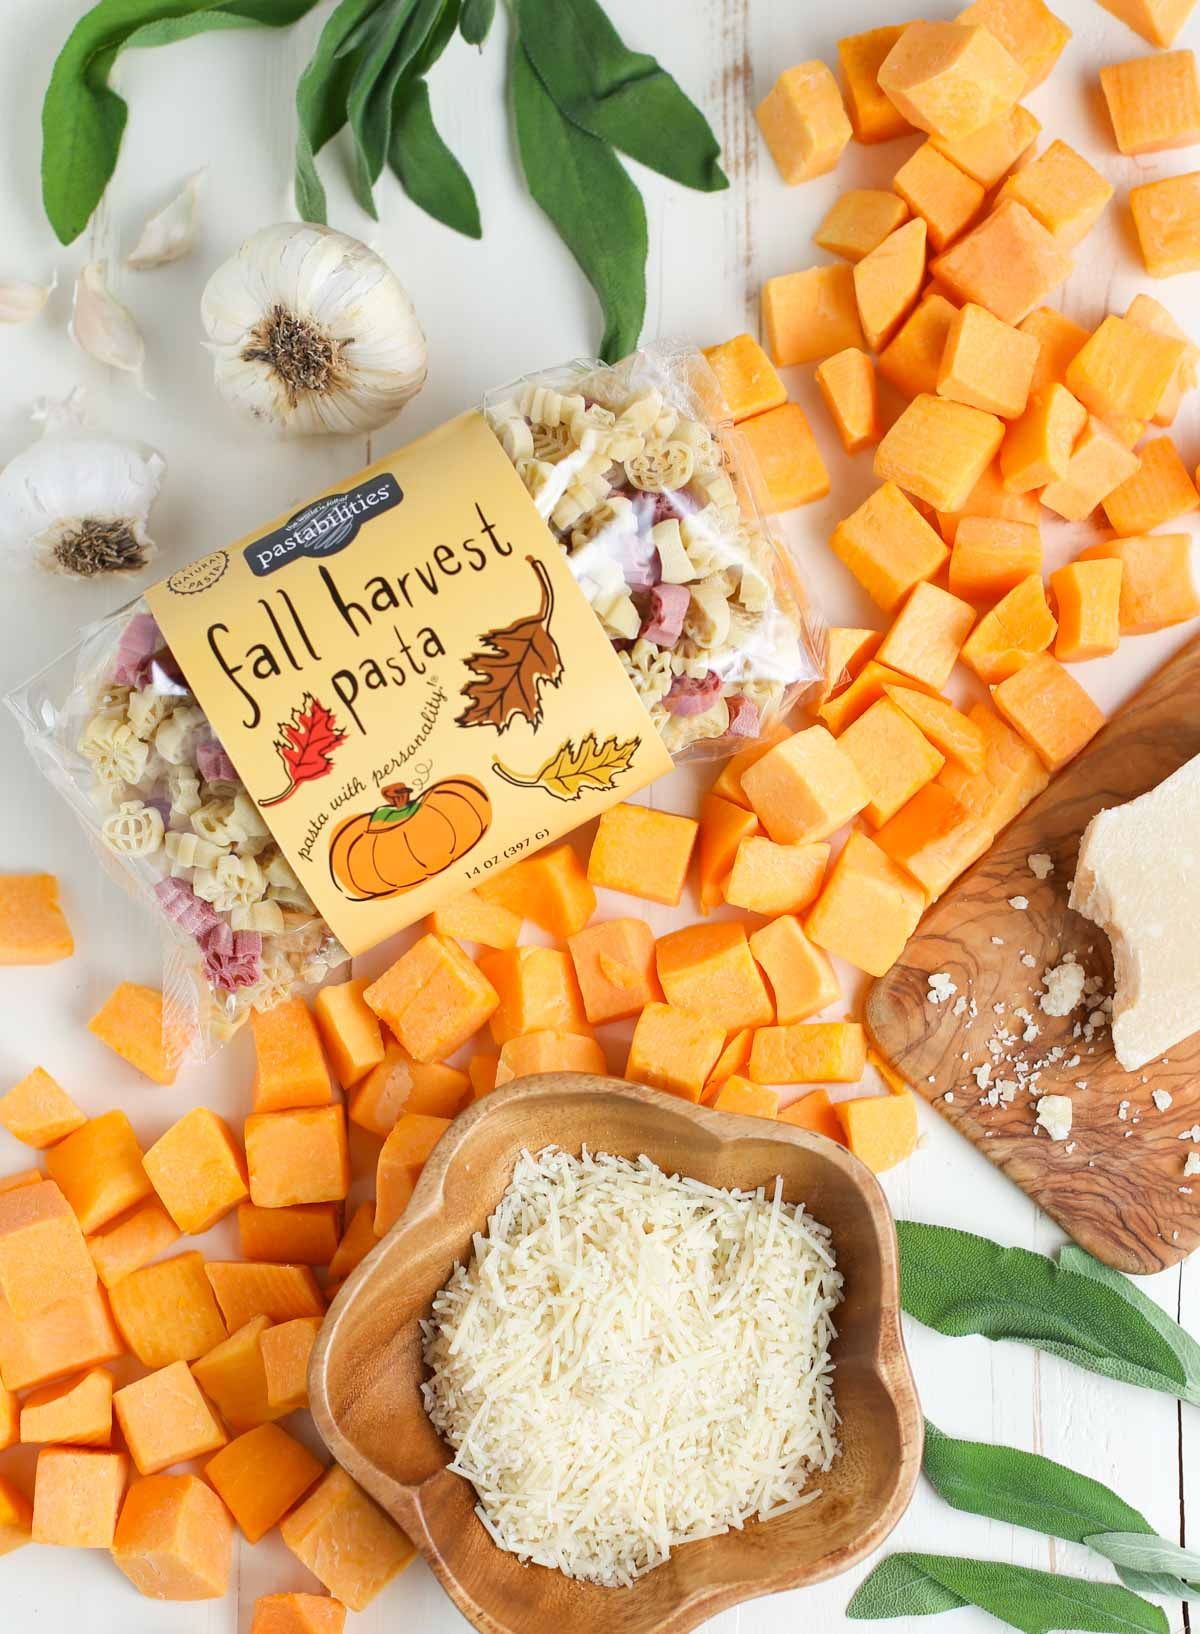 Butternut Squash Alfredo | Beautiful display of ingredients loose including a bag of Fall Harvest Pasta